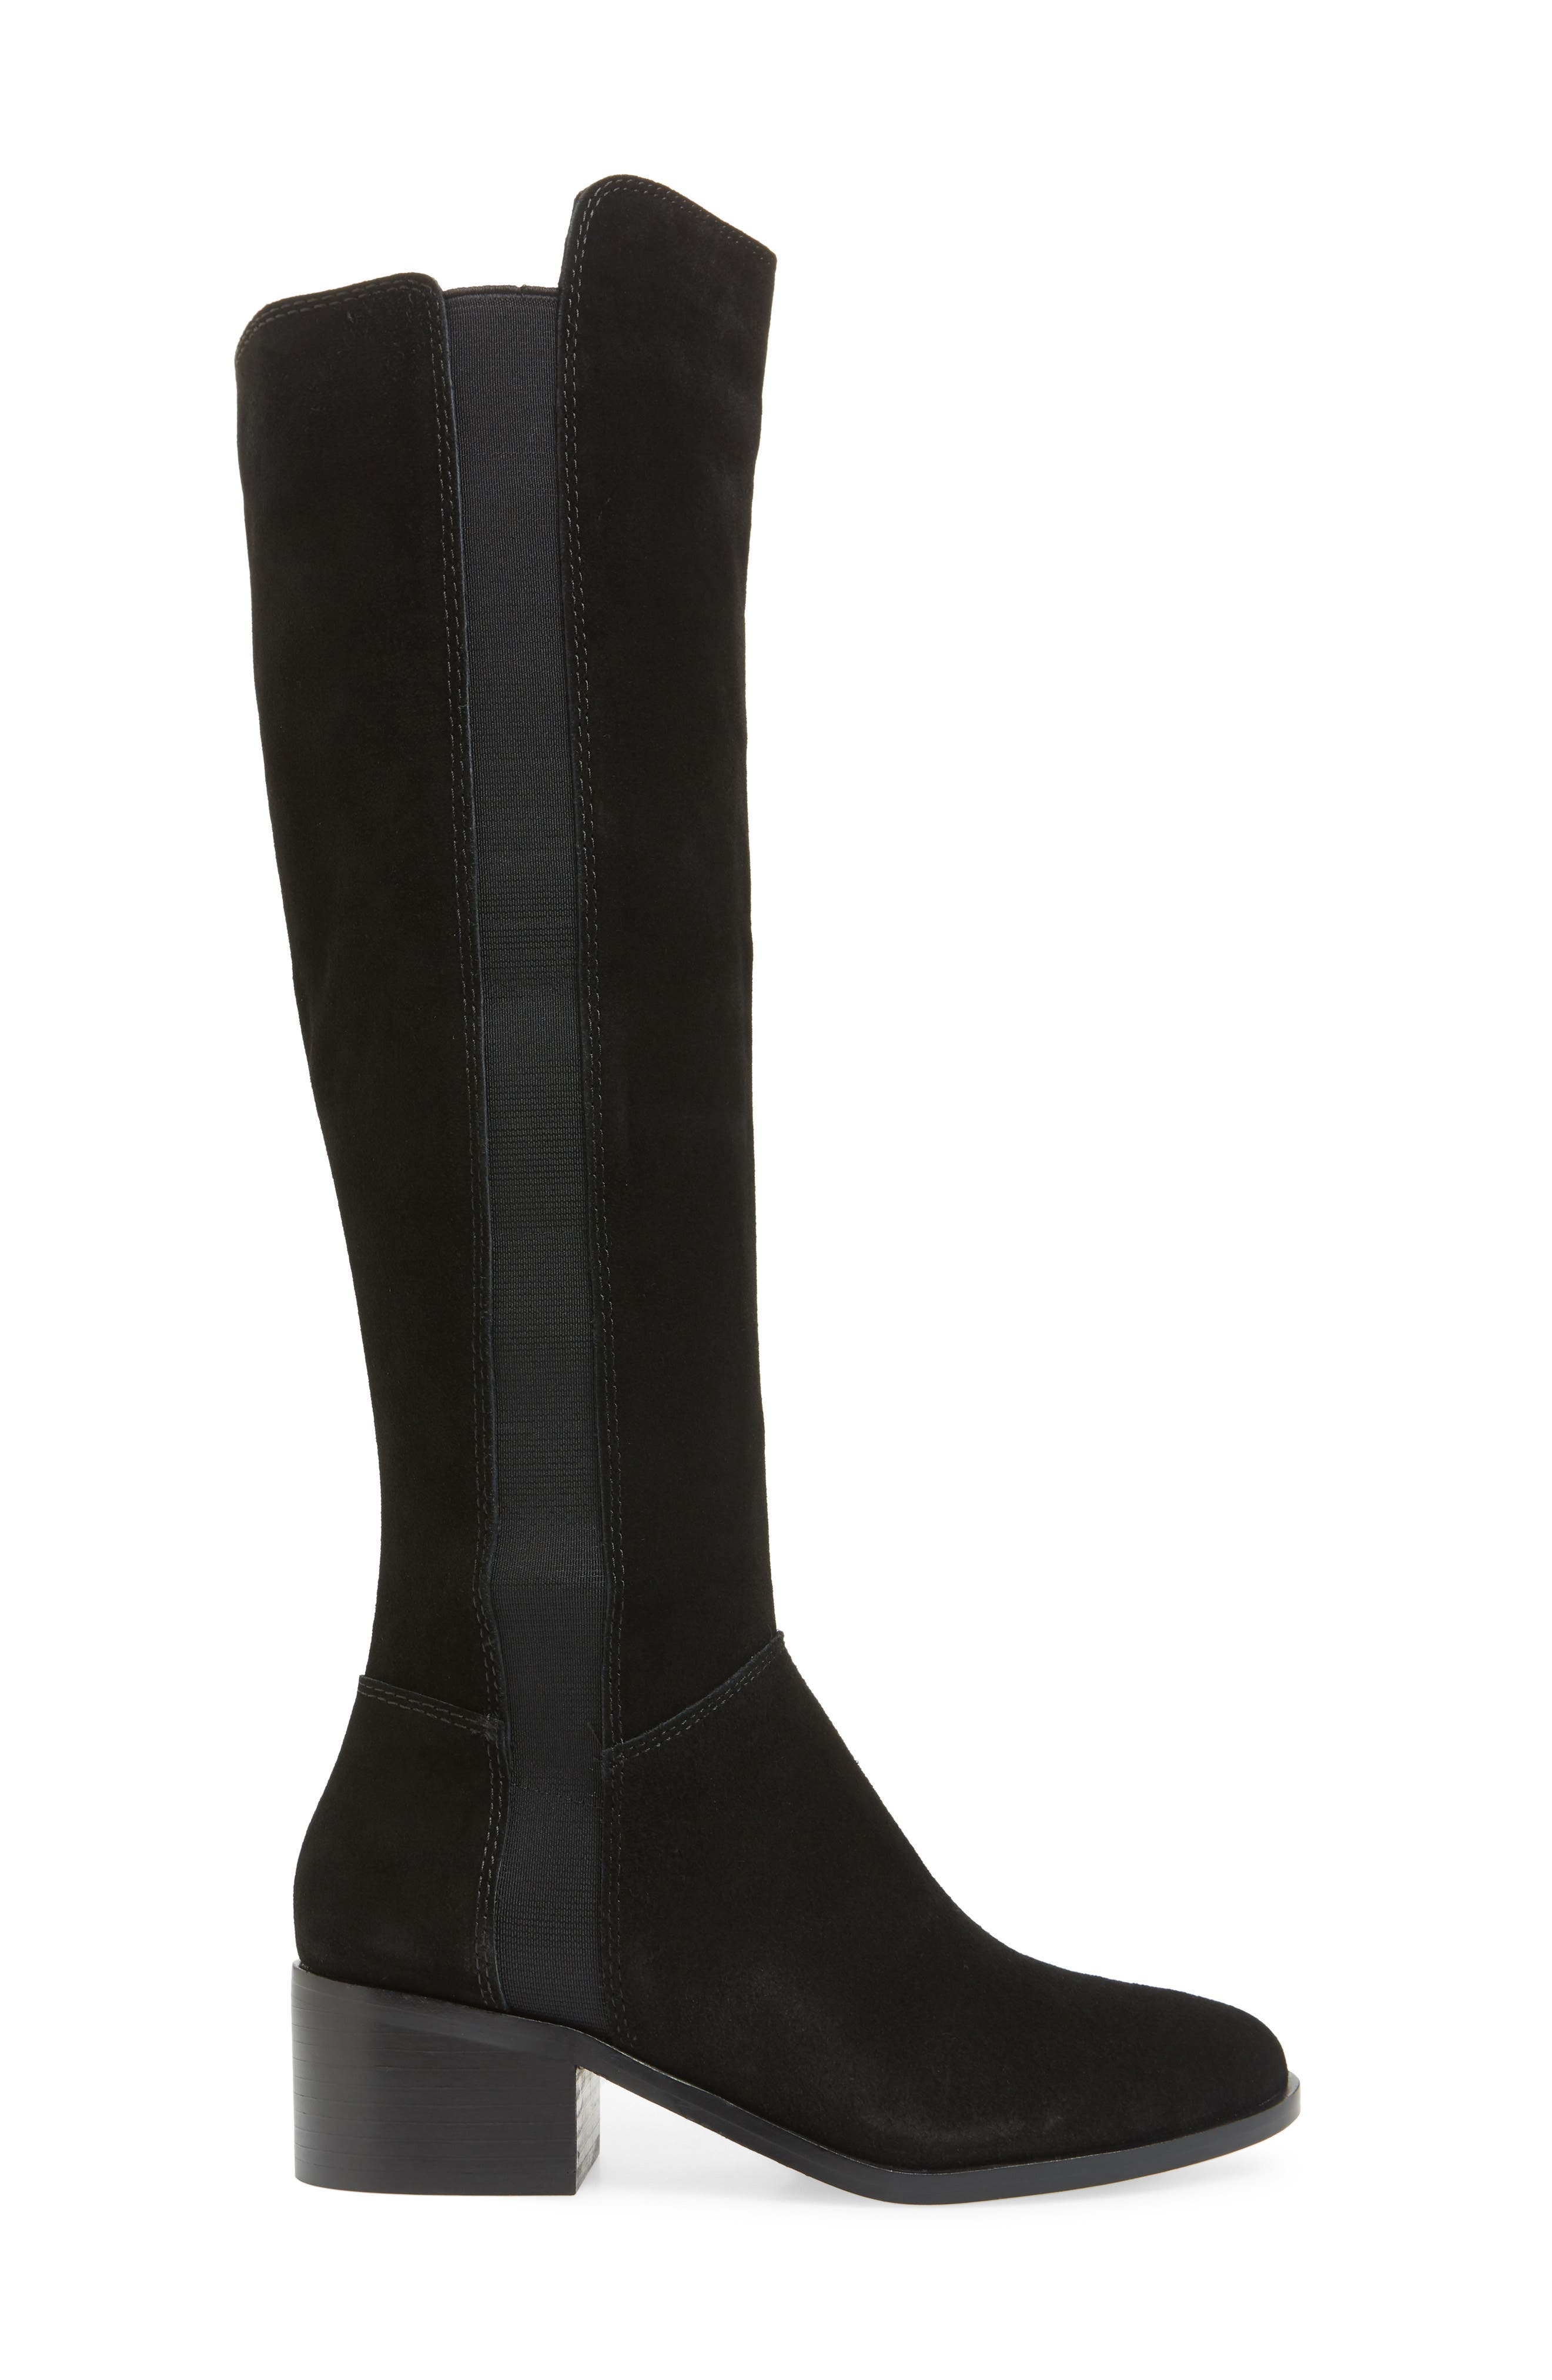 Giselle Over the Knee Boot,                             Alternate thumbnail 3, color,                             BLACK SUEDE